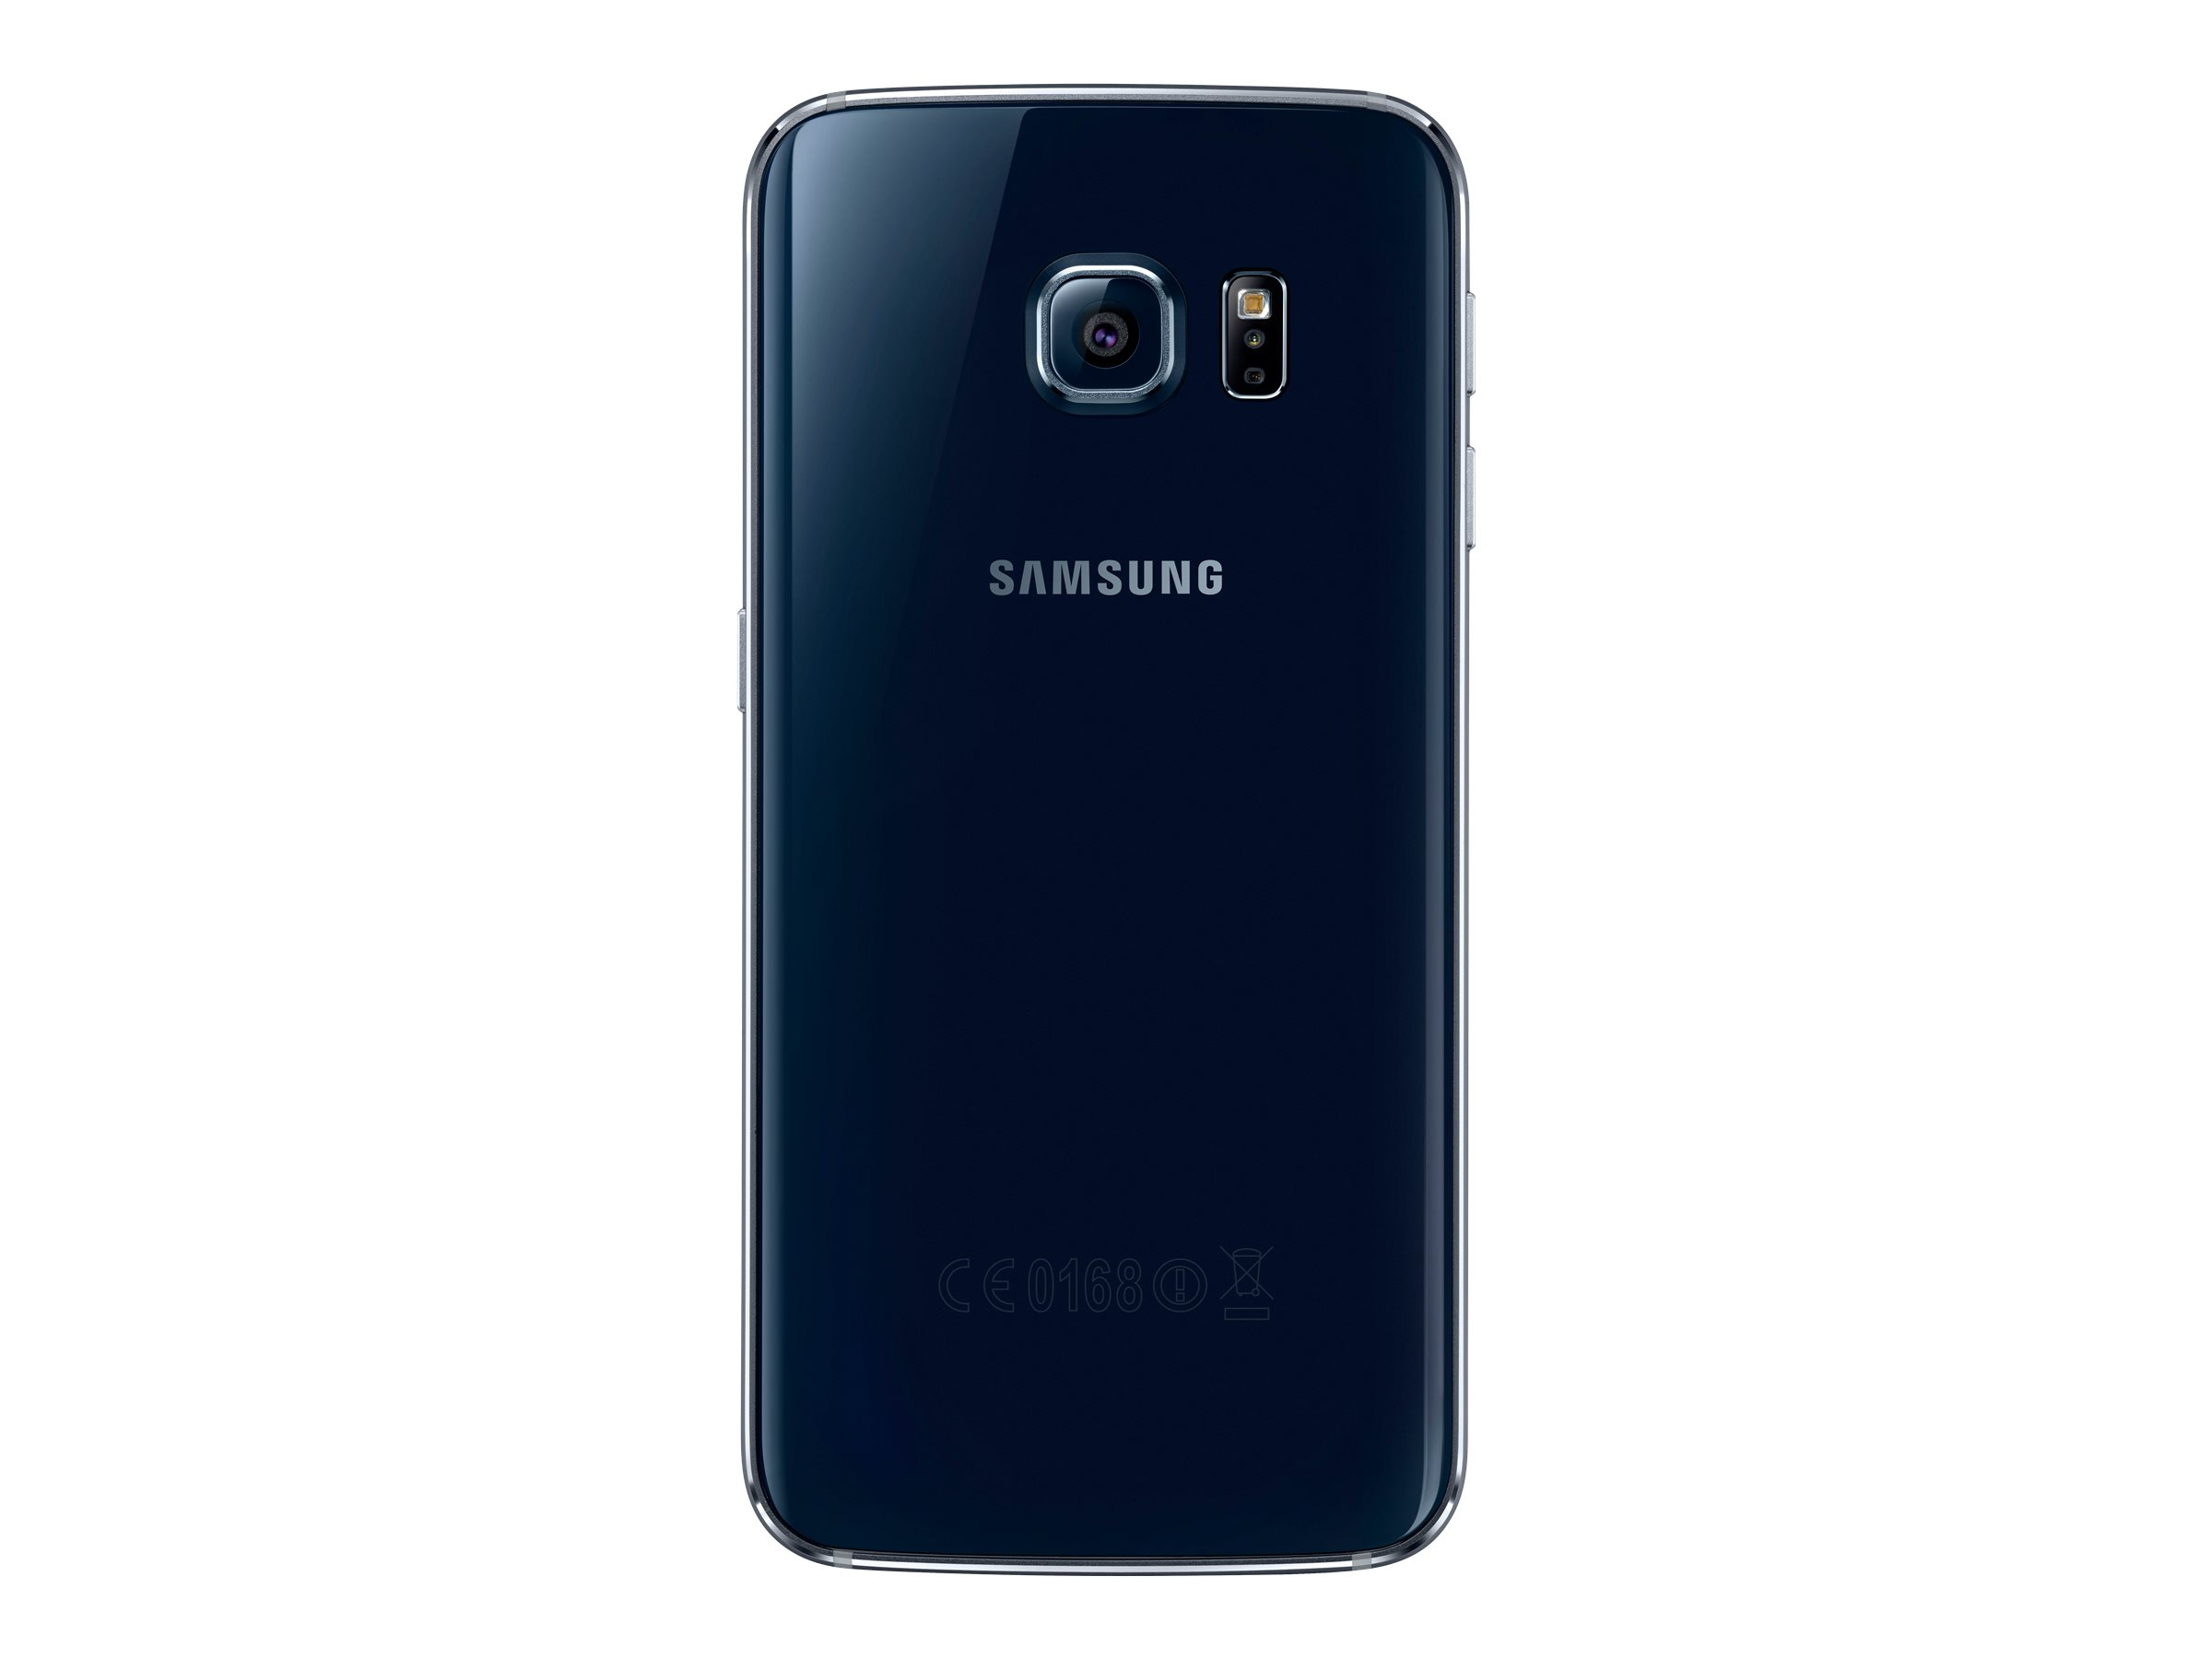 samsung galaxy s6 edge reconditionn sm g925f saphir noir 4g lte lte advanced 32 go. Black Bedroom Furniture Sets. Home Design Ideas